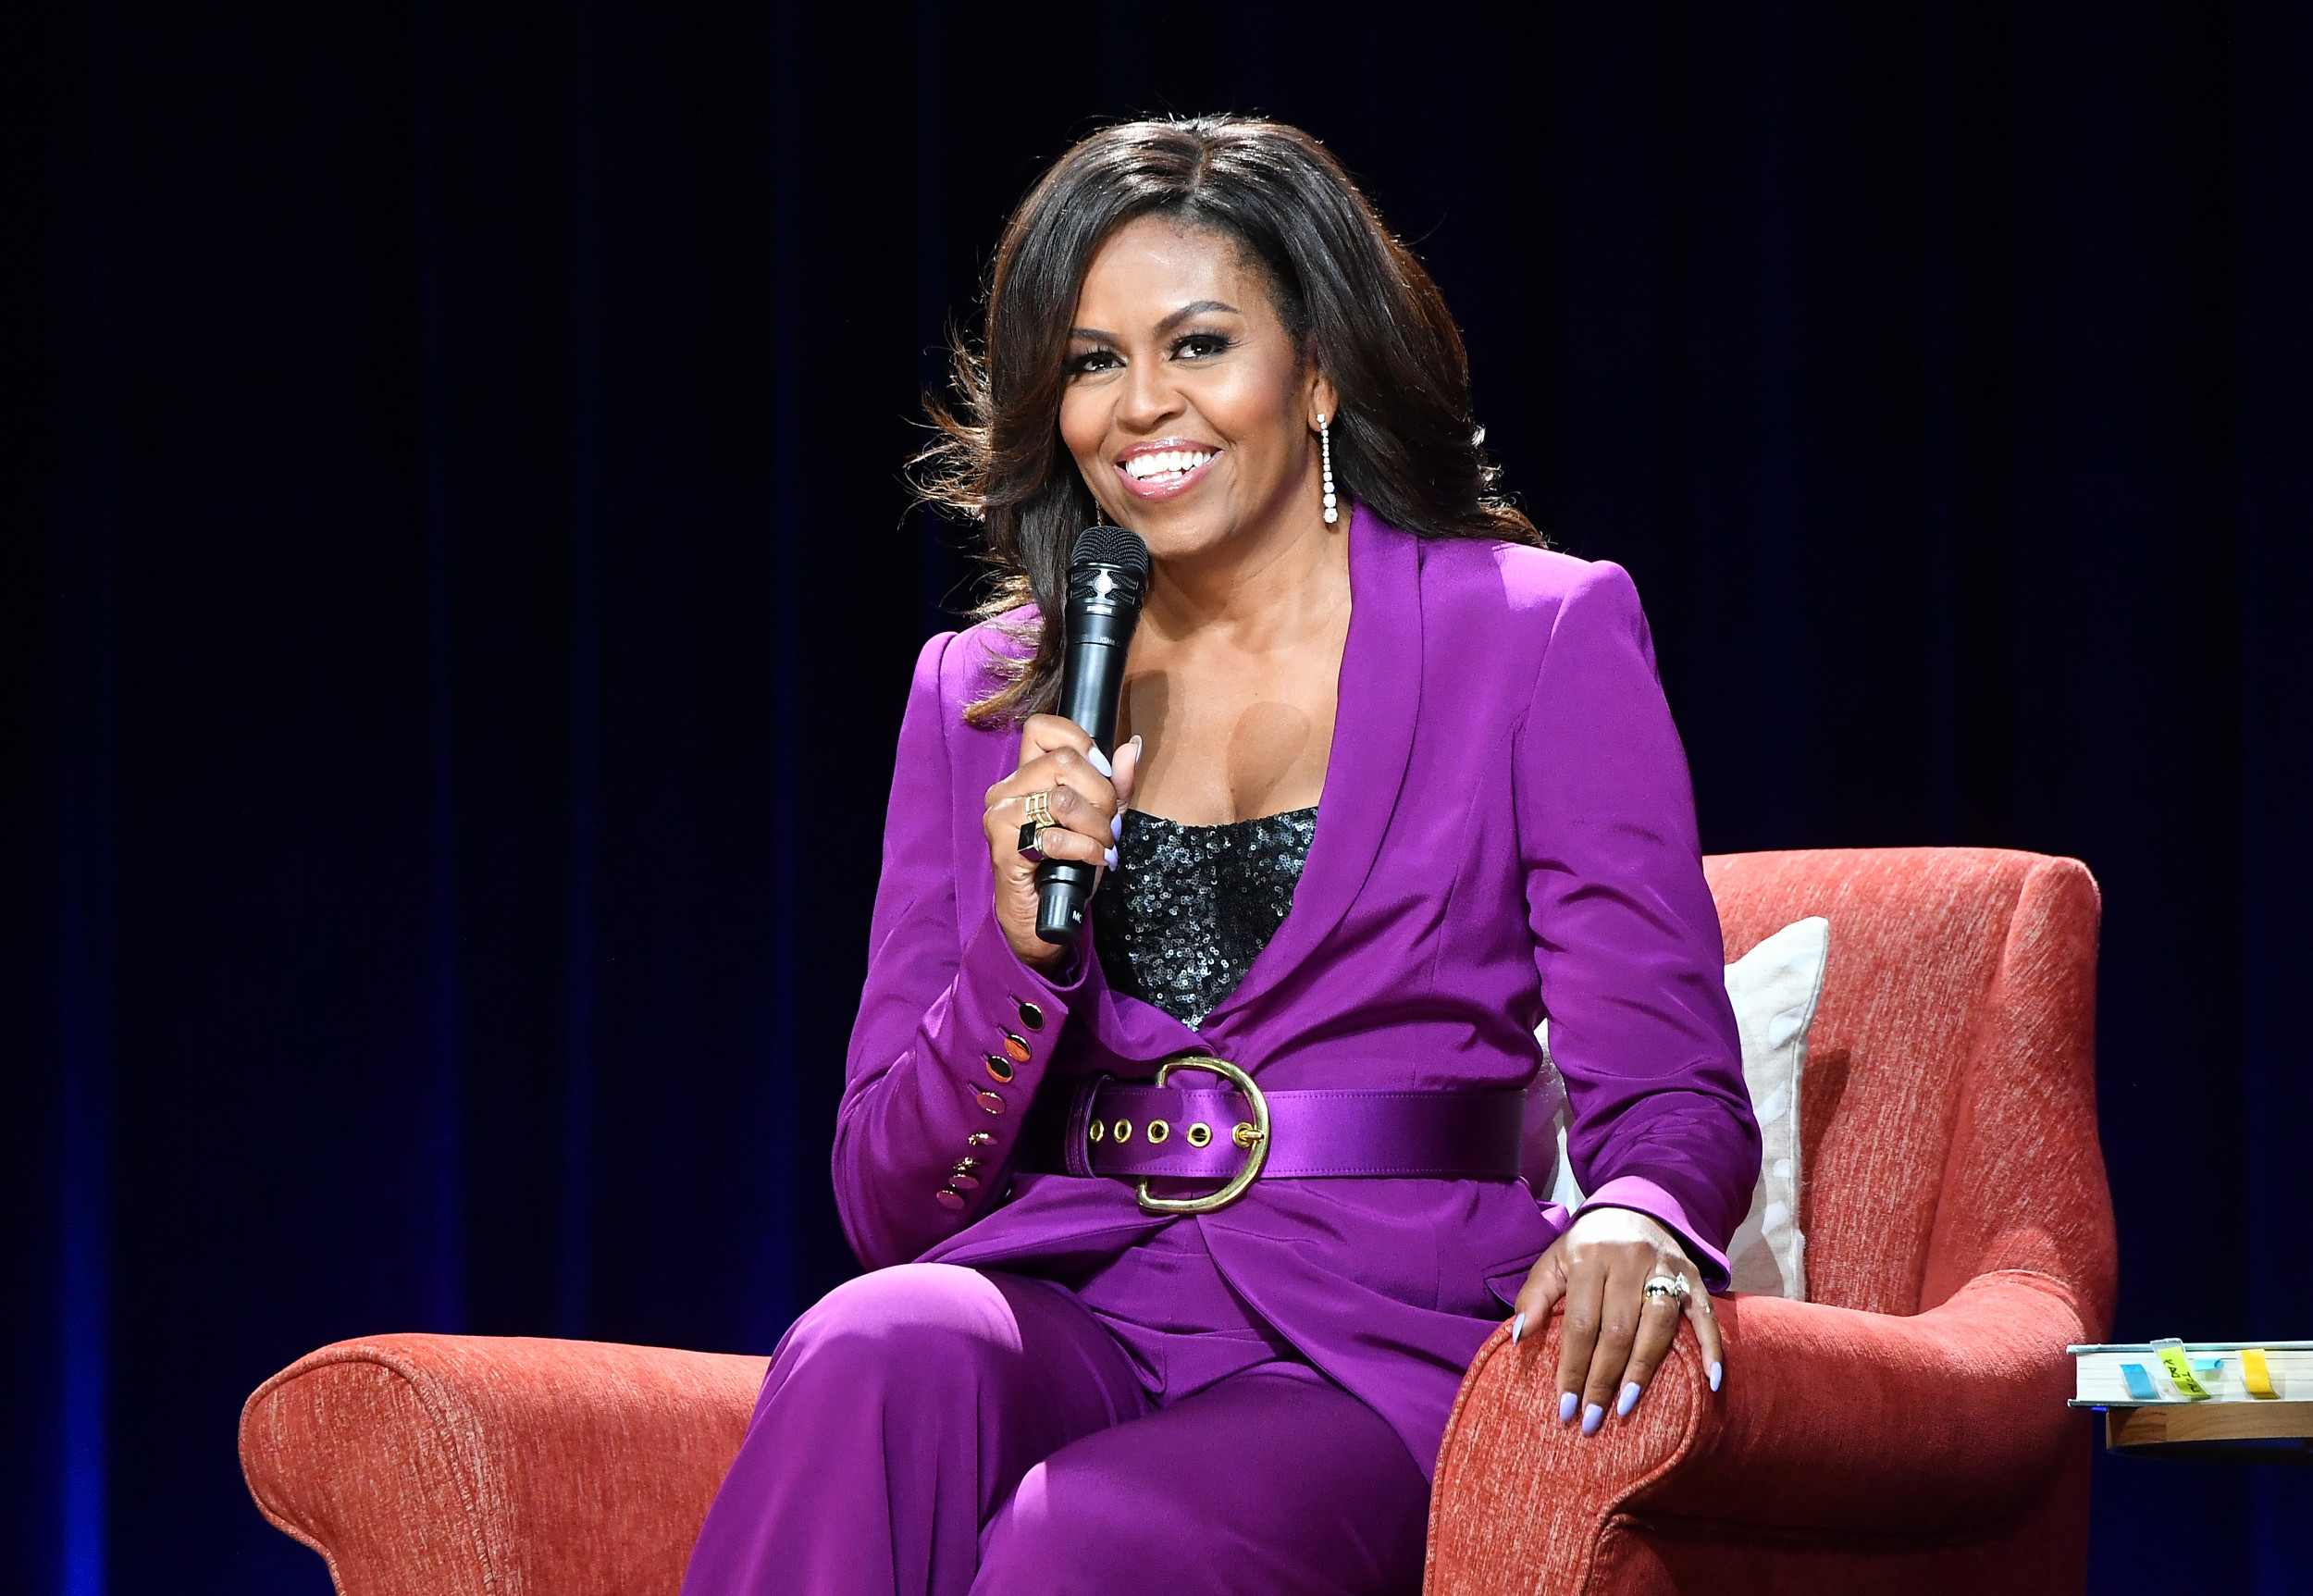 Michelle Obama 'Becoming' Documentary Set to Release on Netflix Next Month